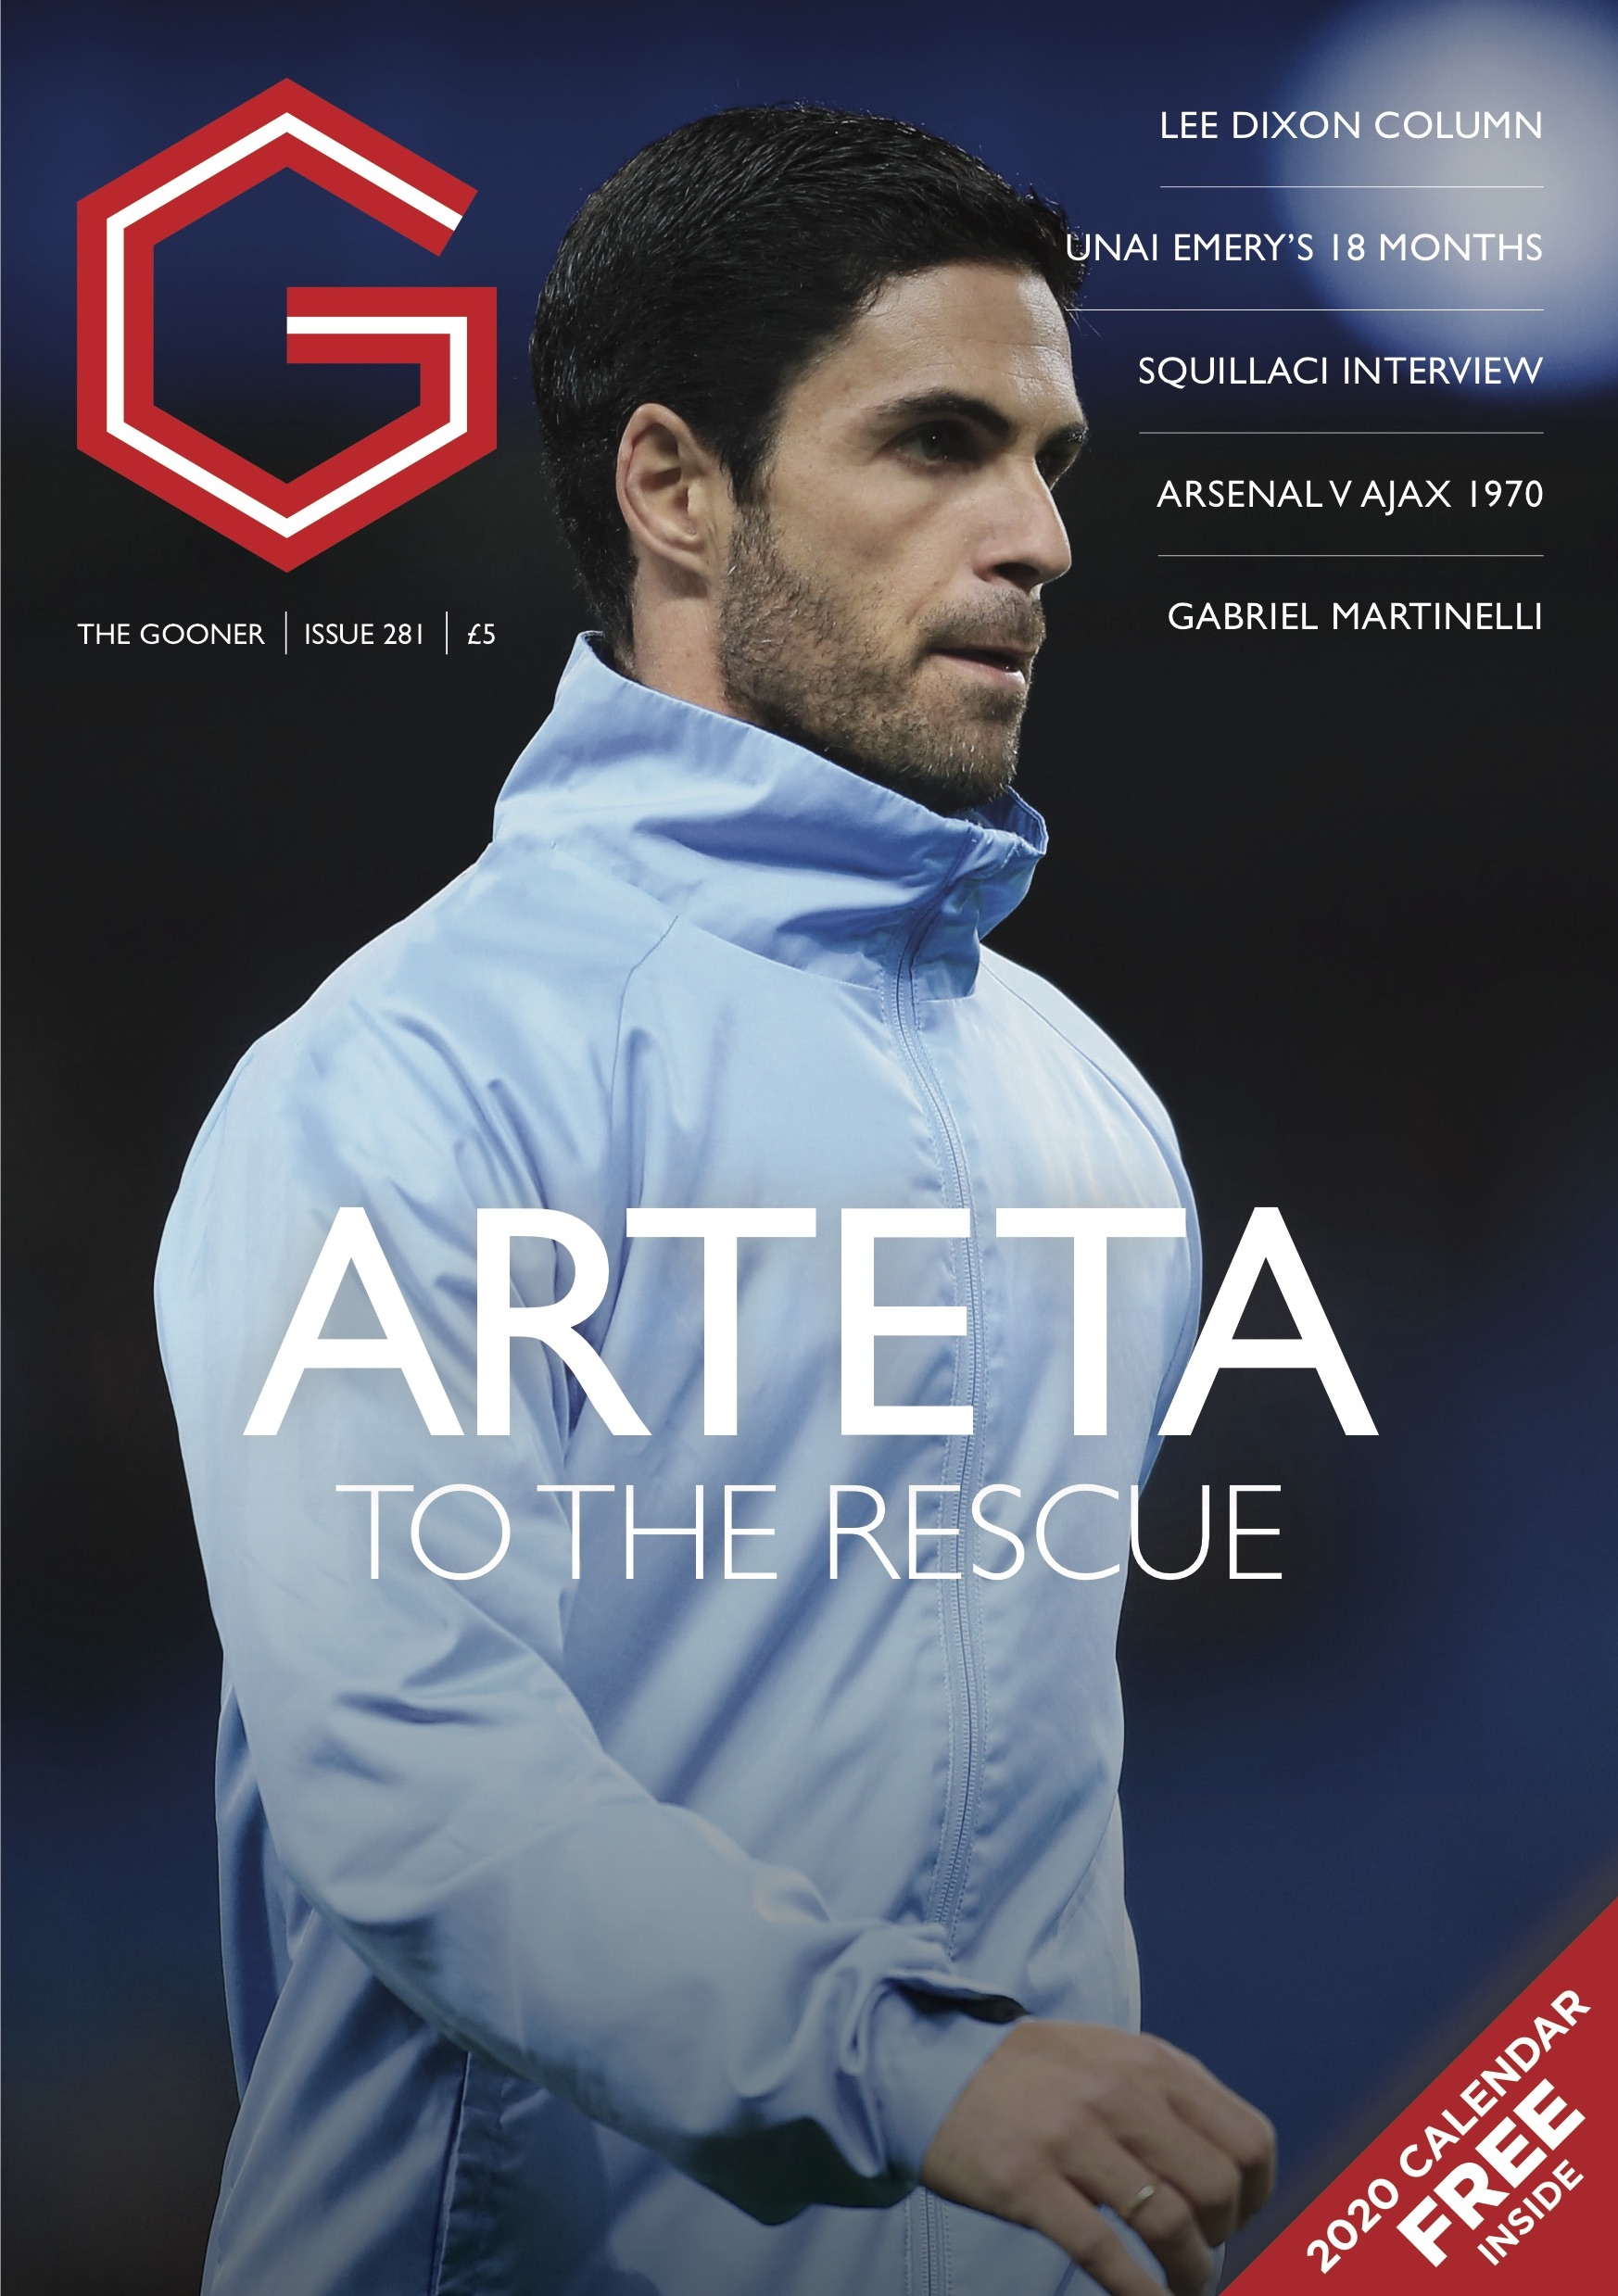 Current Edition – The Gooner Issue 281 (UK)